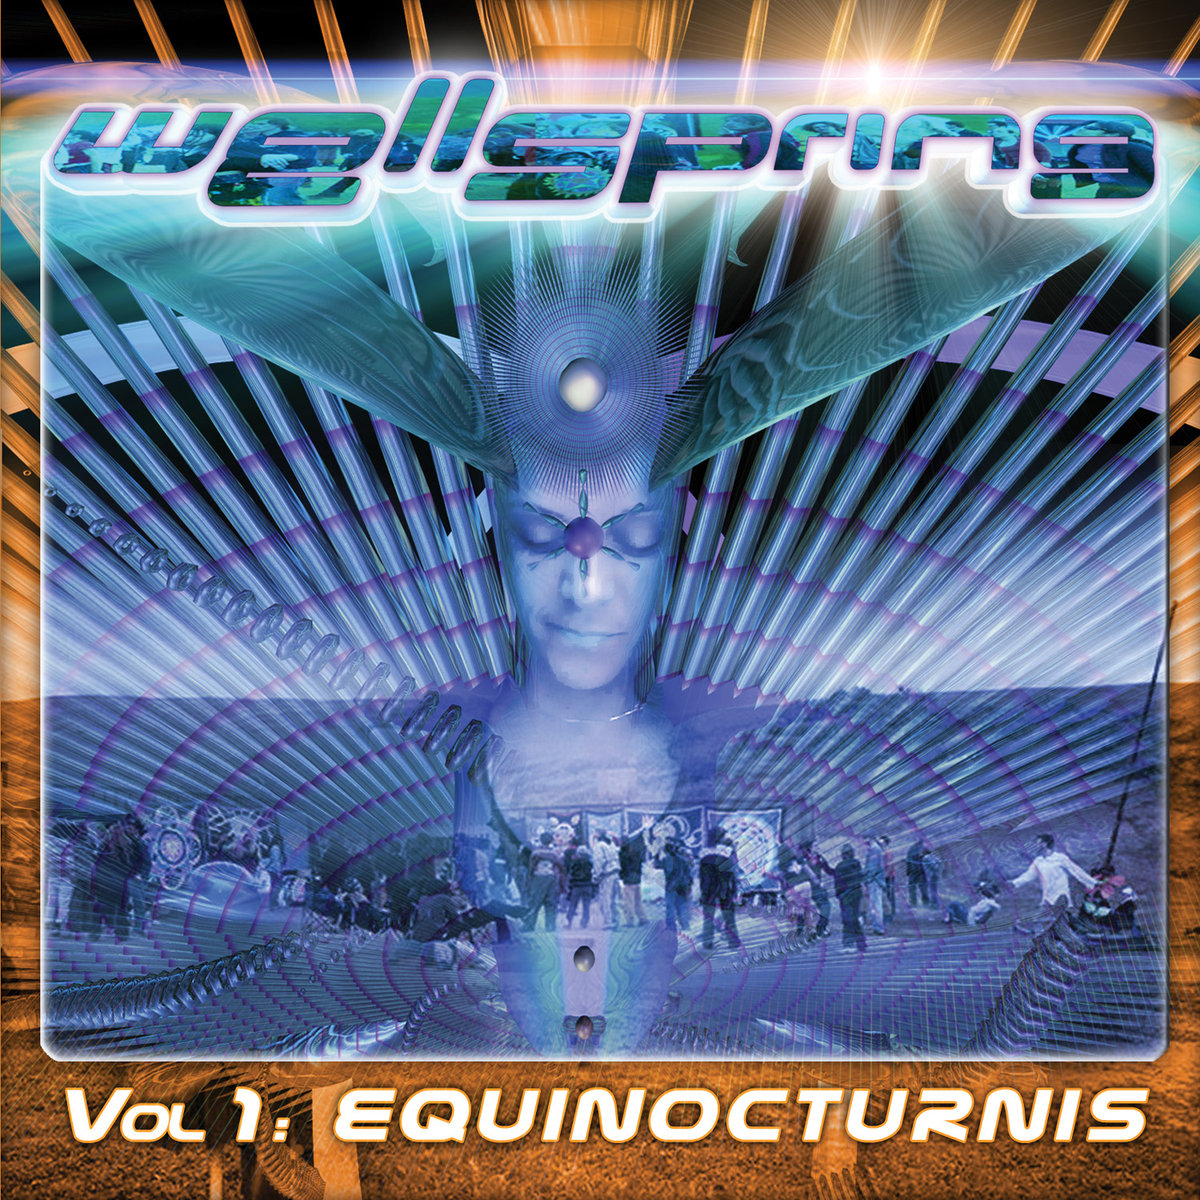 Sir Eel - Masseye @ 'Various Artists - Wellspring Vol. 1: Equinocturnis' album (electronic, goa)